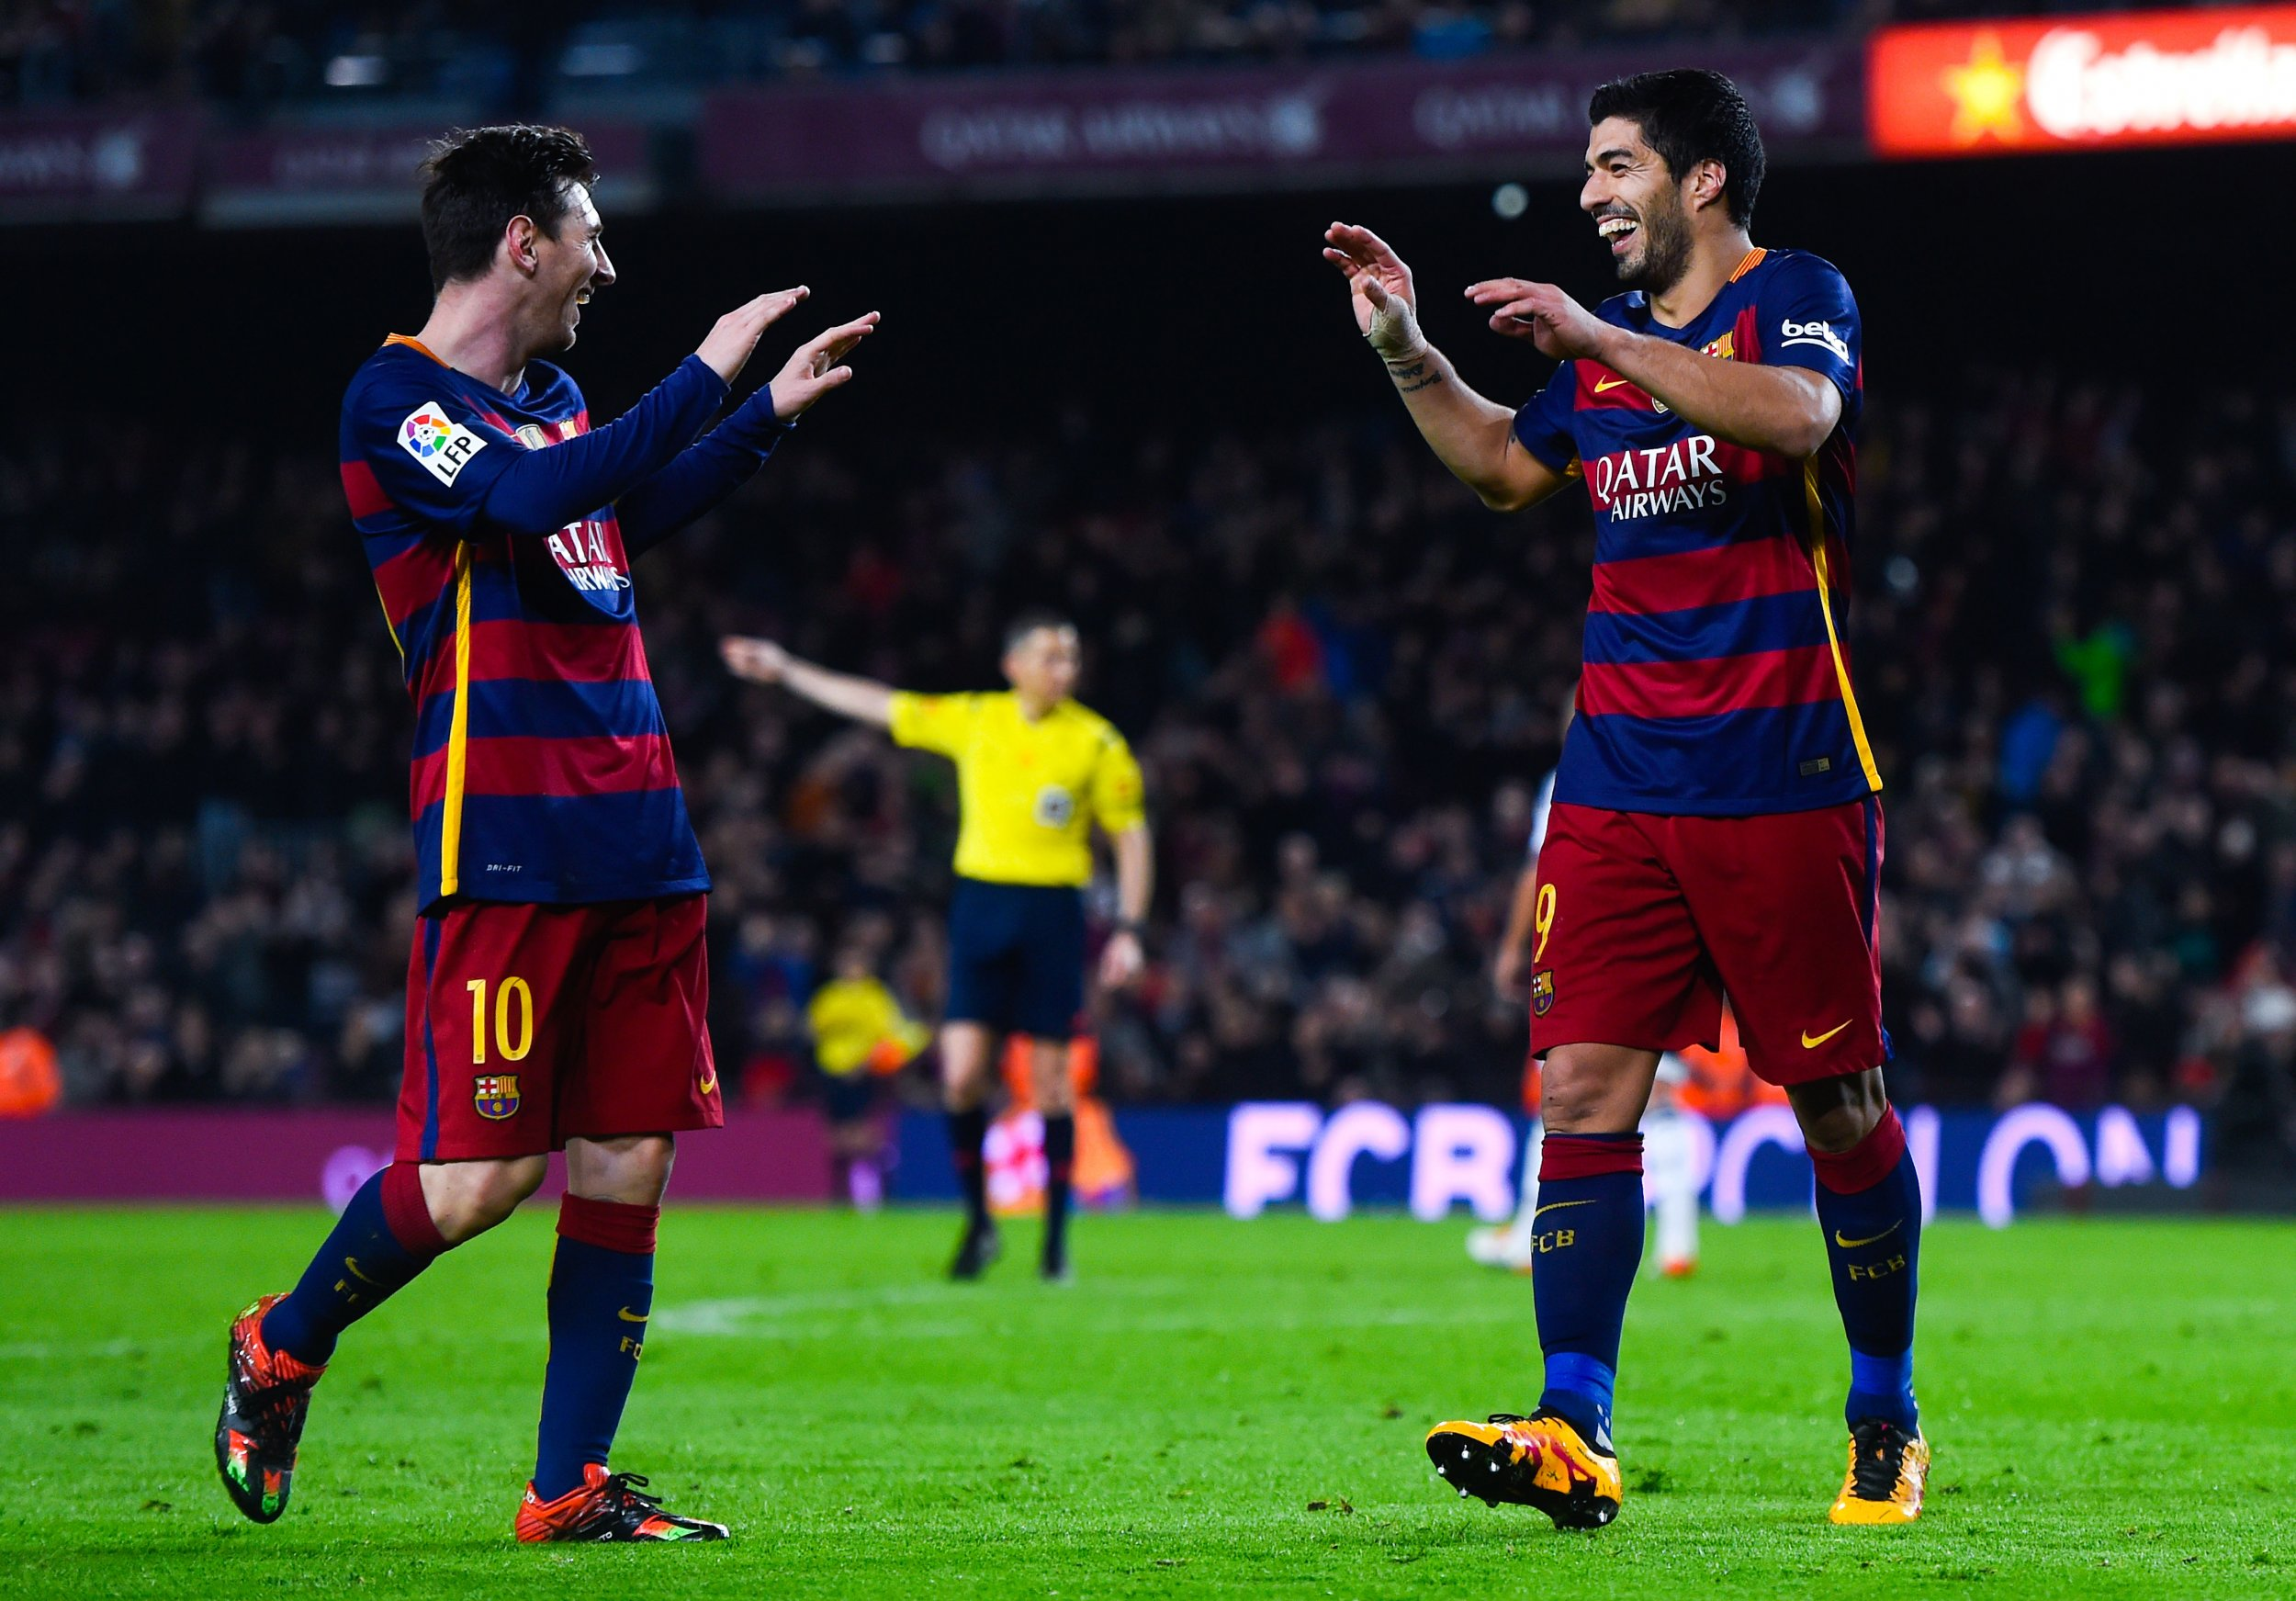 Lionel Messi and Luis Suarez routed Valencia at the Camp Nou.